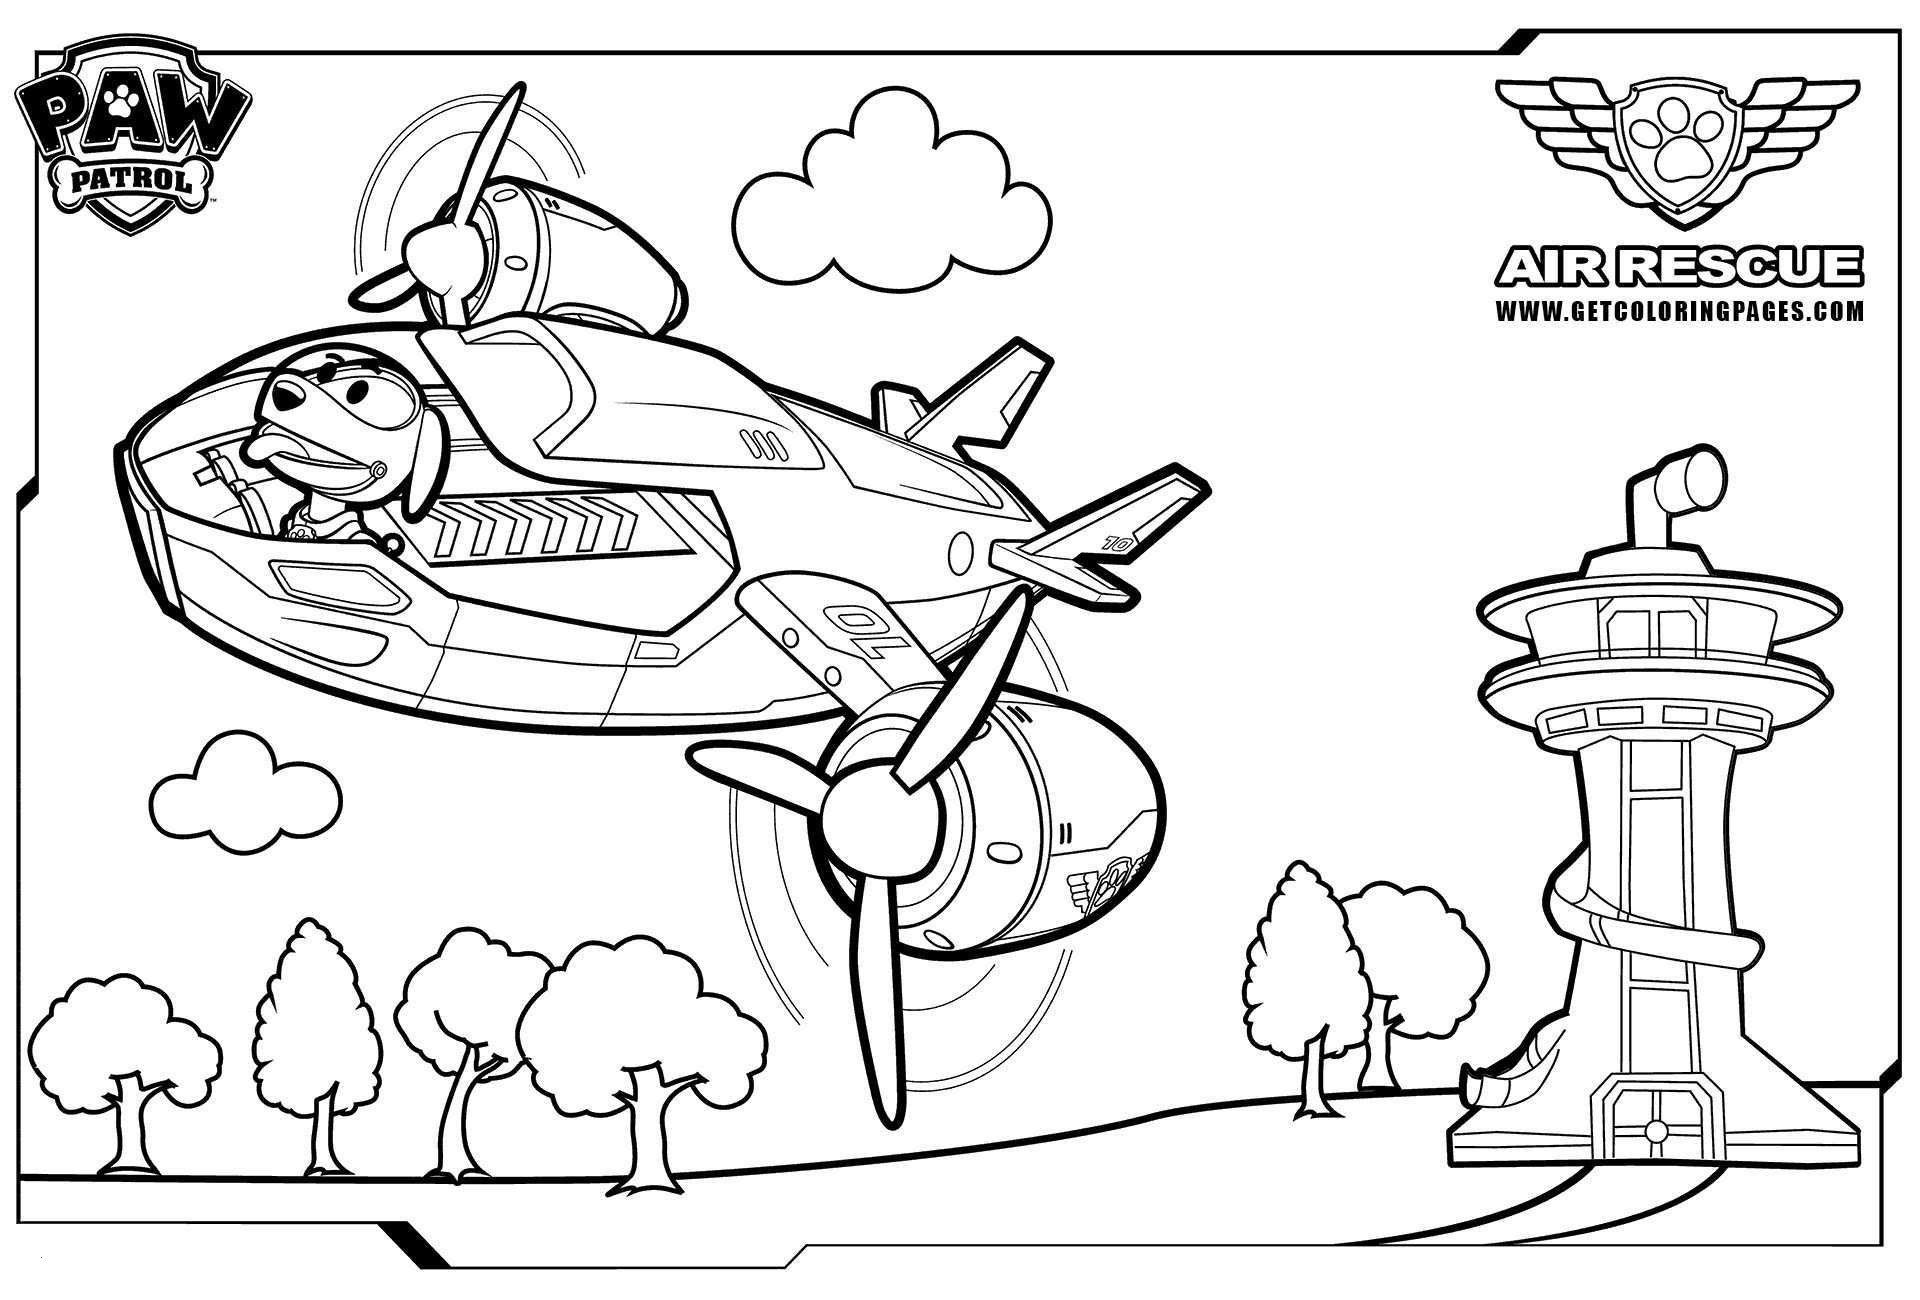 rescue dog coloring pages ausmalbilder paw patrol air patroller dog rescue pages coloring